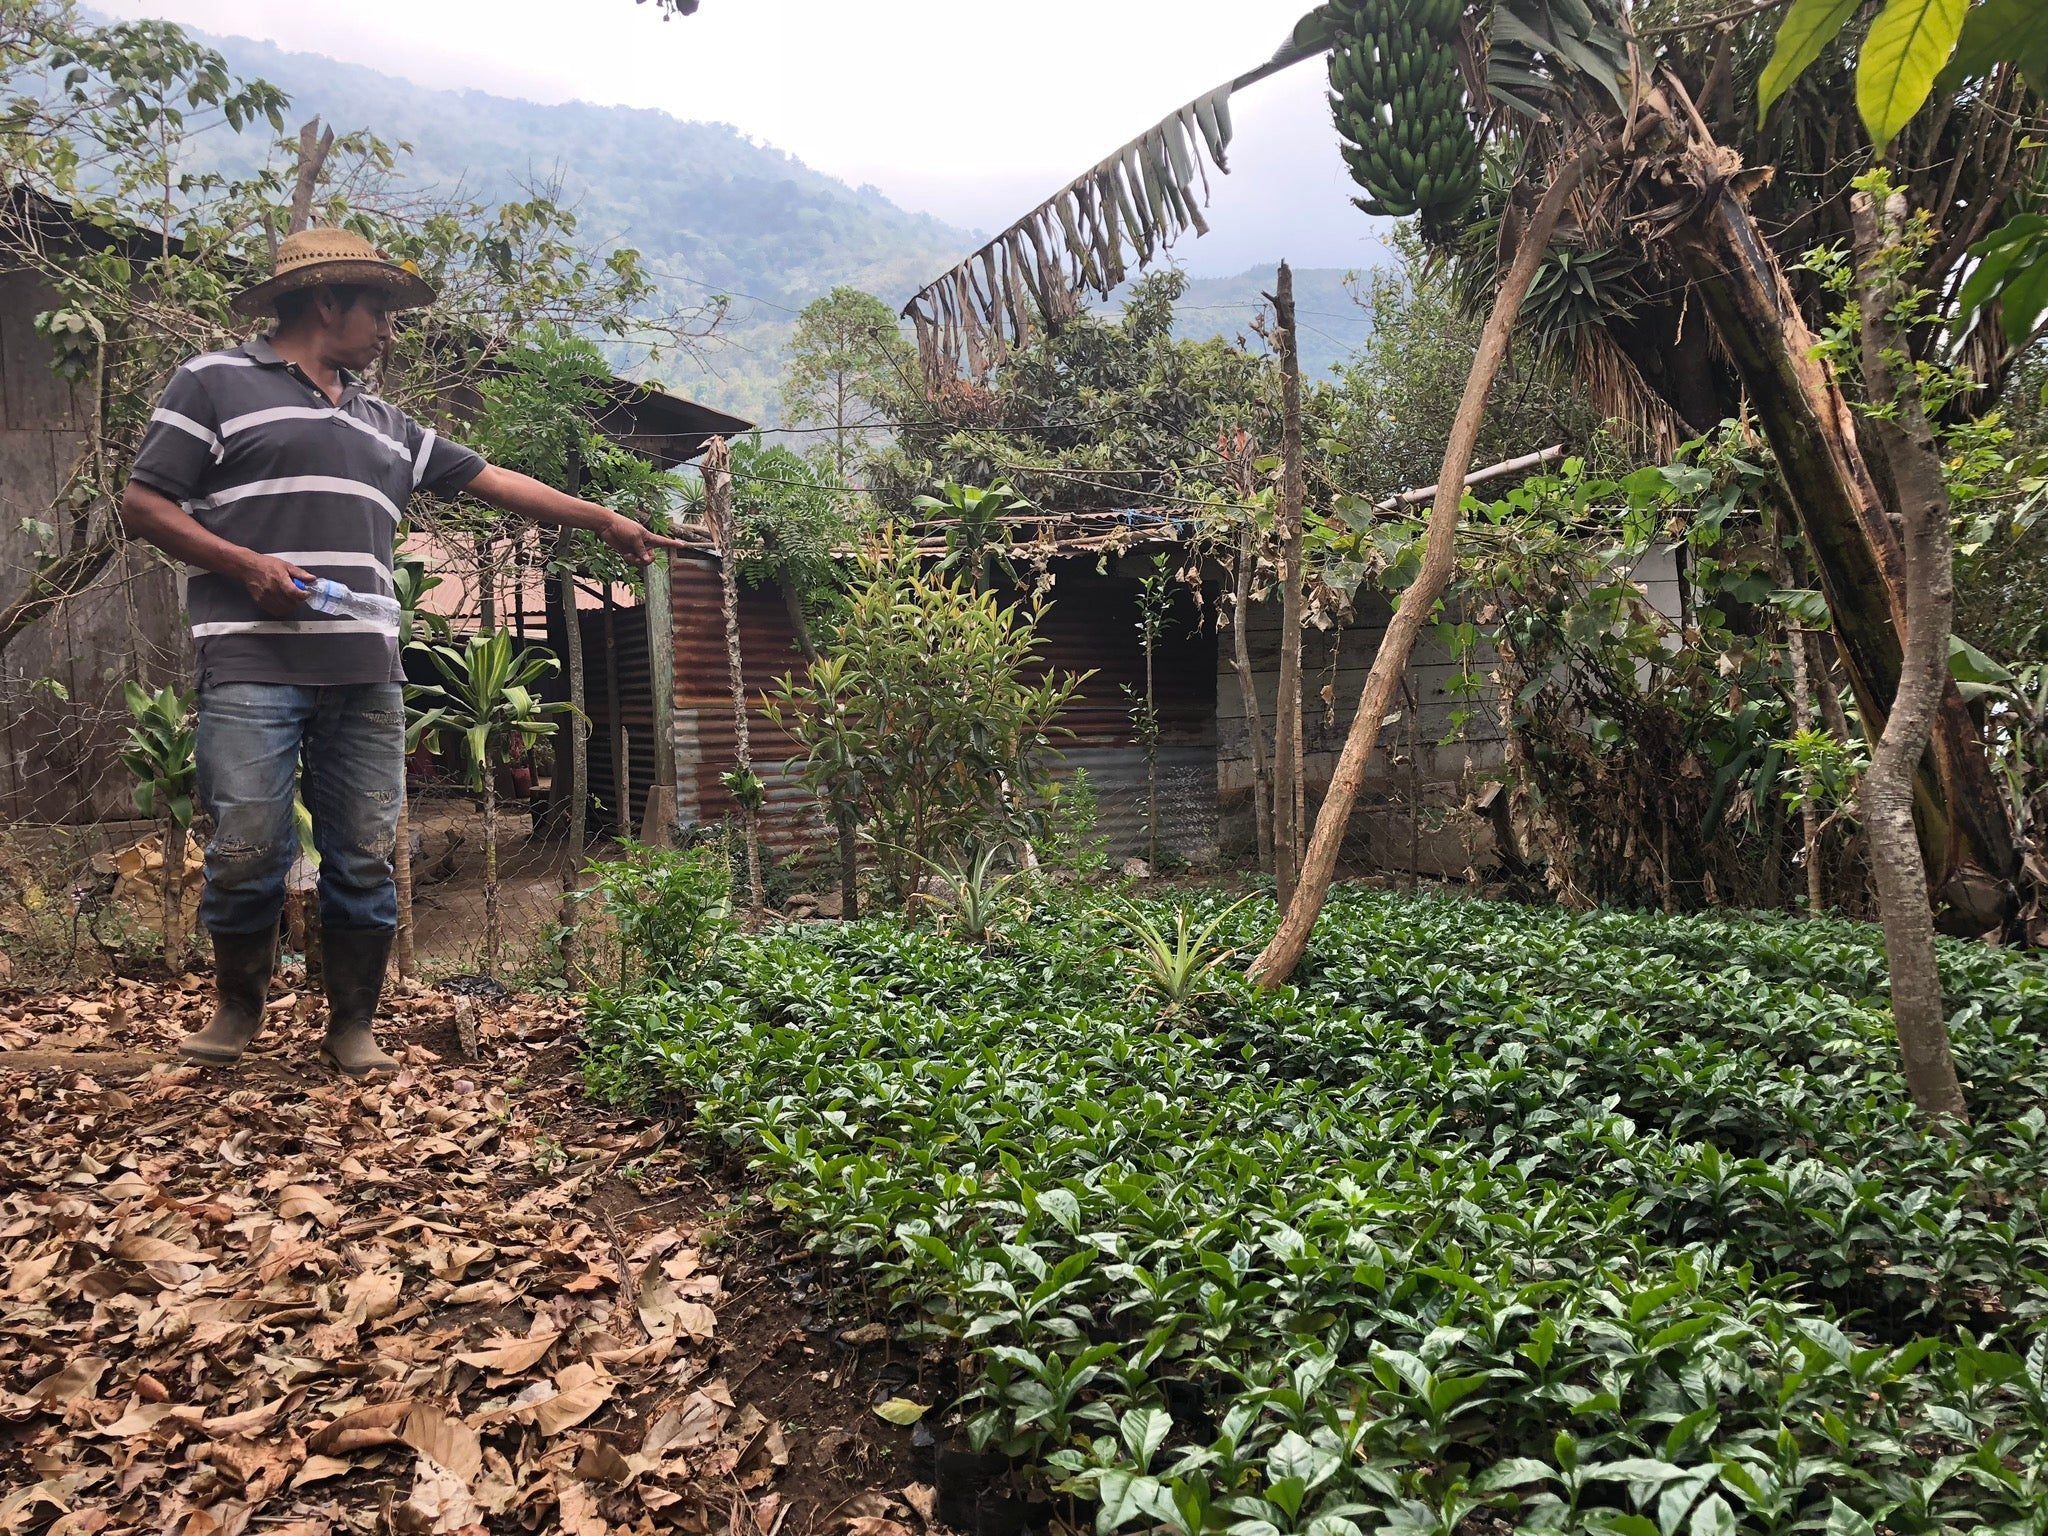 Pablo, leader of the Chochajau Collective in Pasajquim, Guatemala, surveying new seedling varietys of coffee plants.